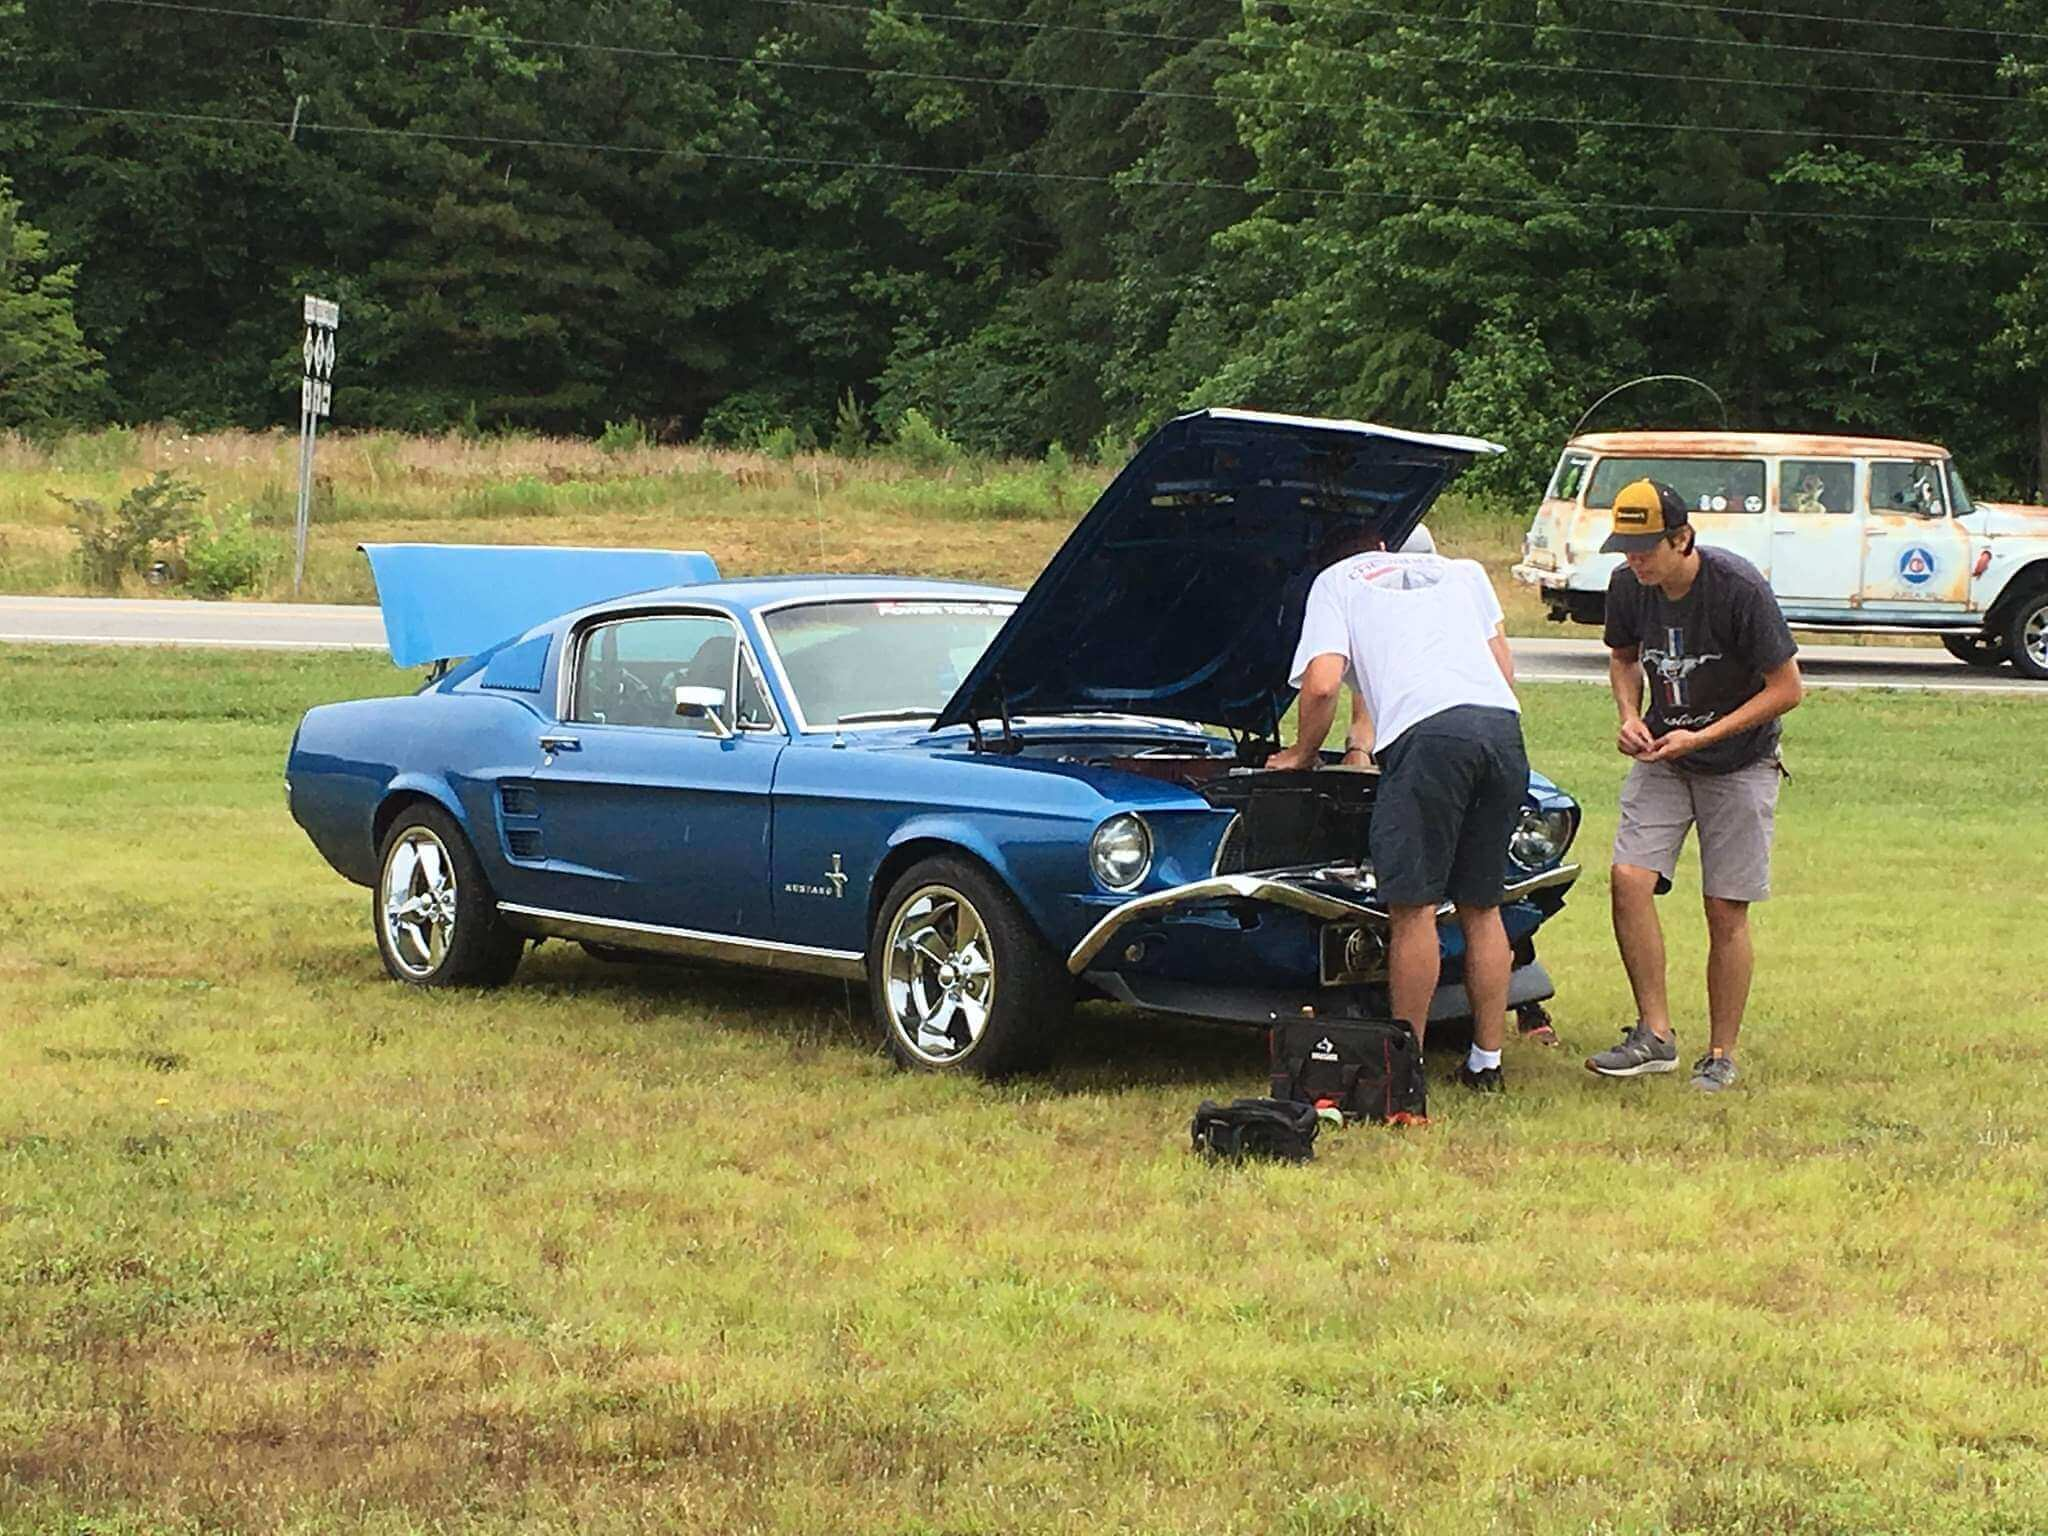 Hot Rod Power Tour '67 Mustang Fastback